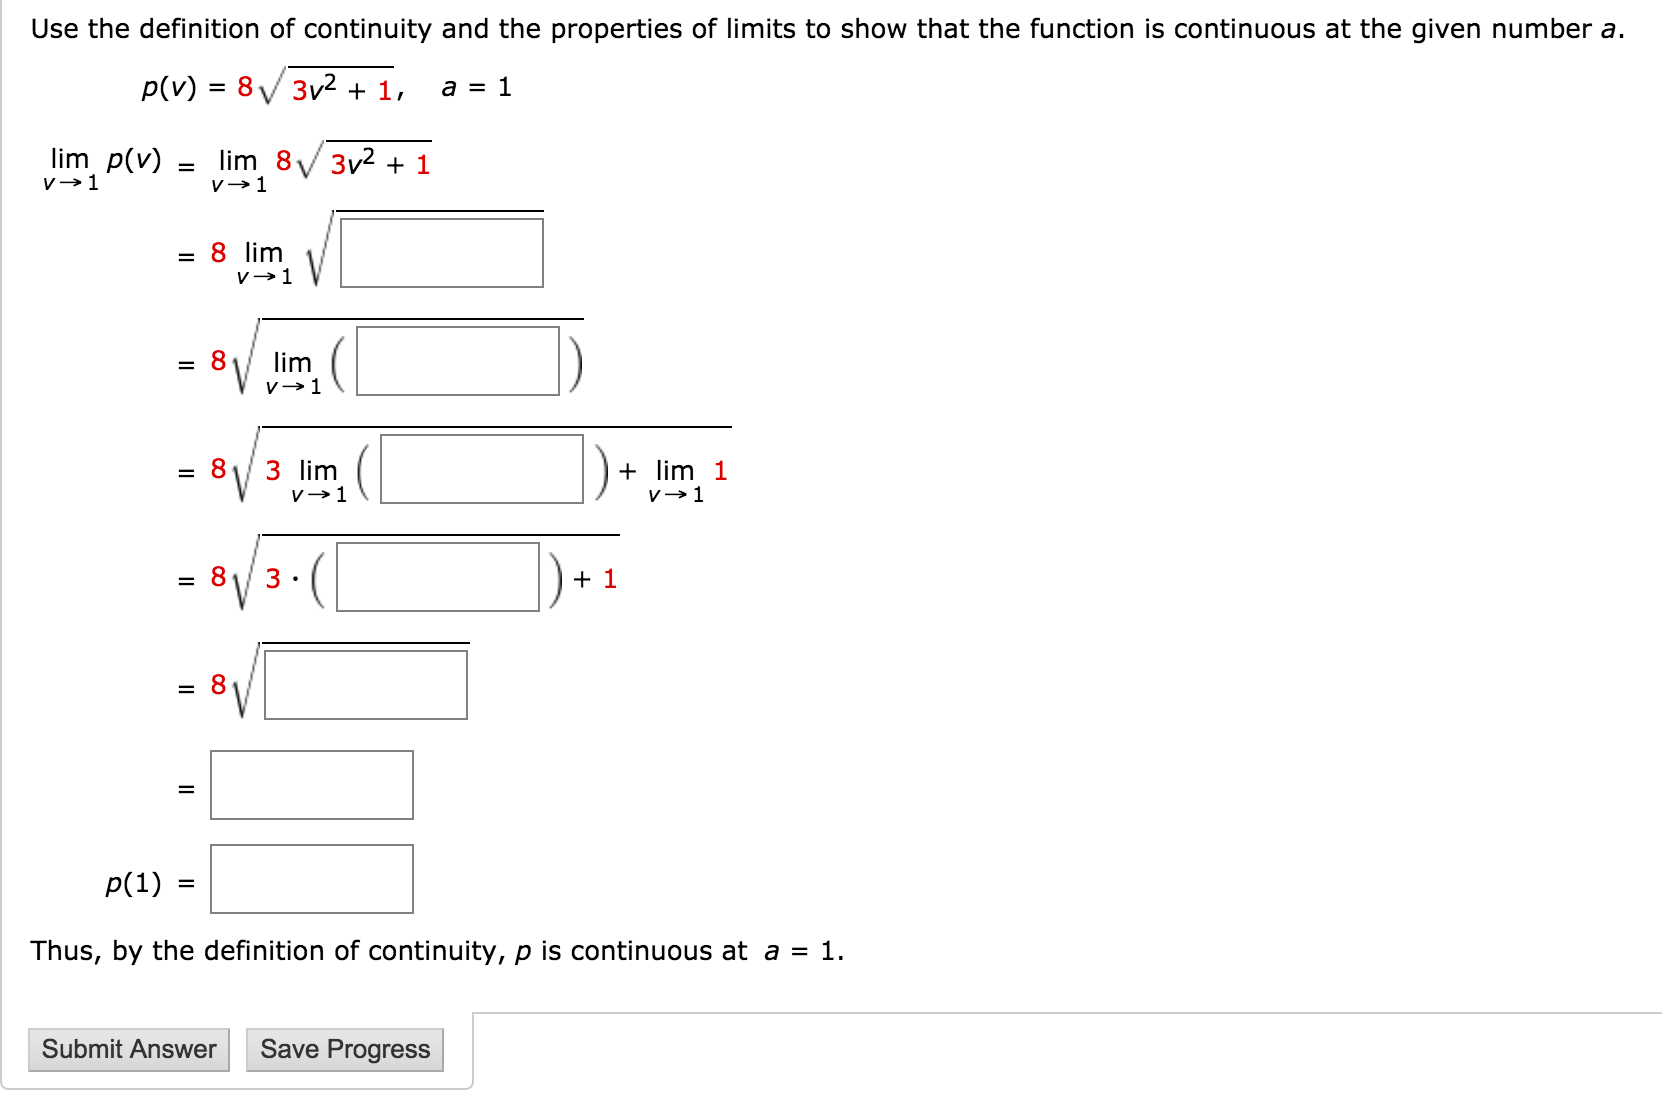 worksheet Properties Definition use the definition of continuity and propertie chegg com show transcribed image text properties limits to that function is continuous at